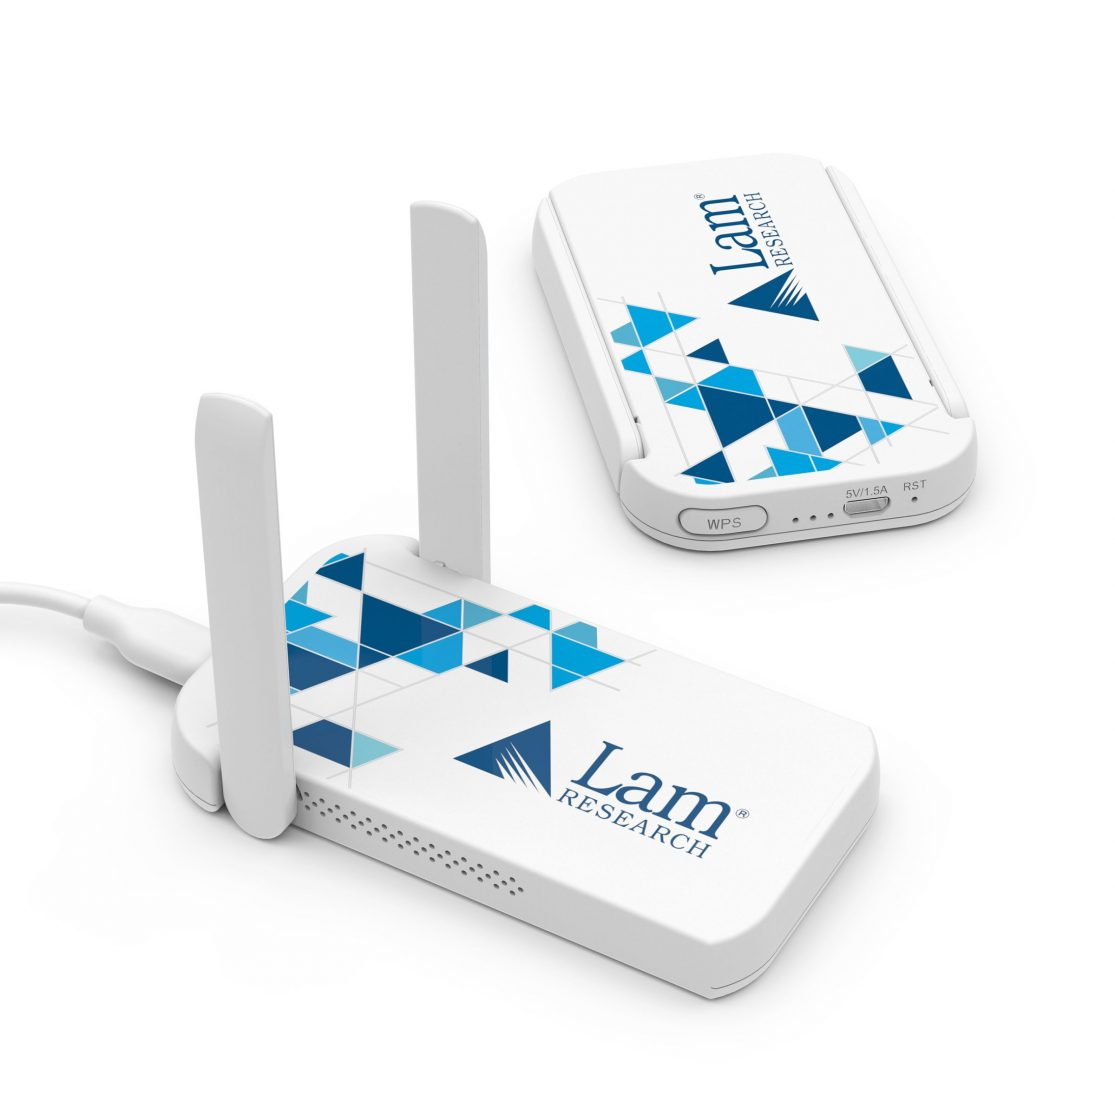 Dual bands:  2.4 GHz and 5 GHz